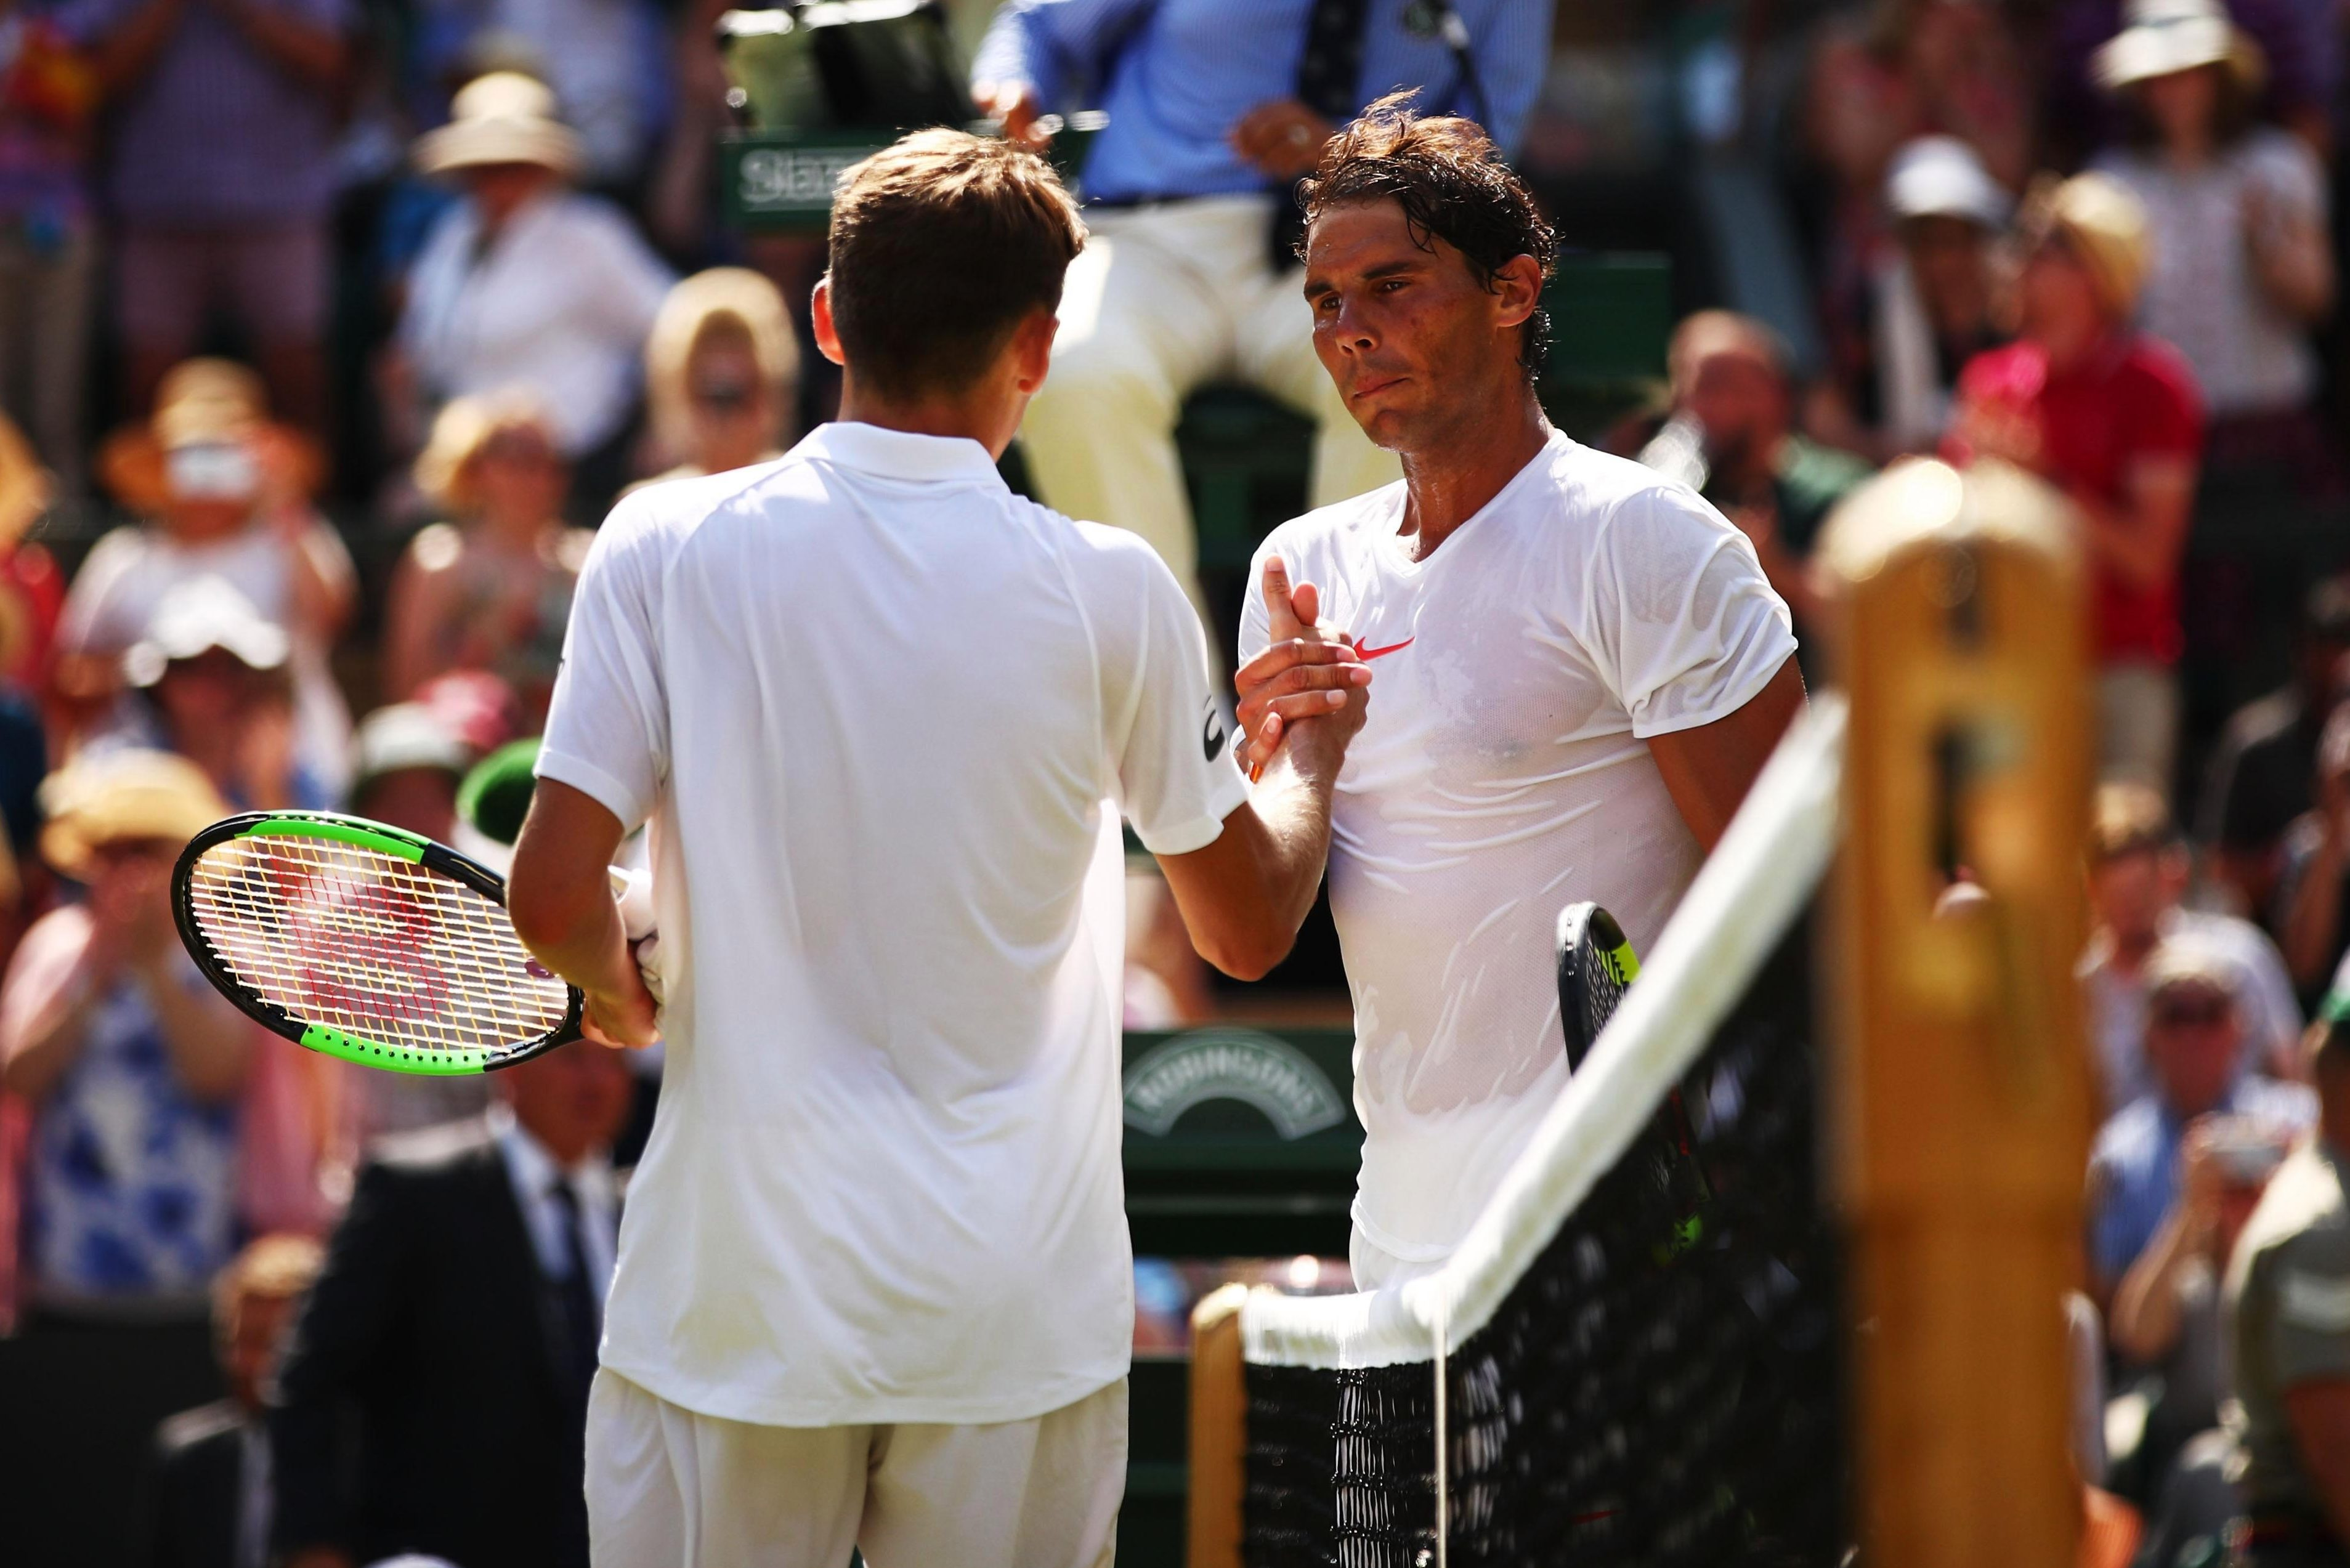 Rafael Nadal shakes hands with Alex De Minaur during their Men's Singles third round match on day six at Wimbledon.